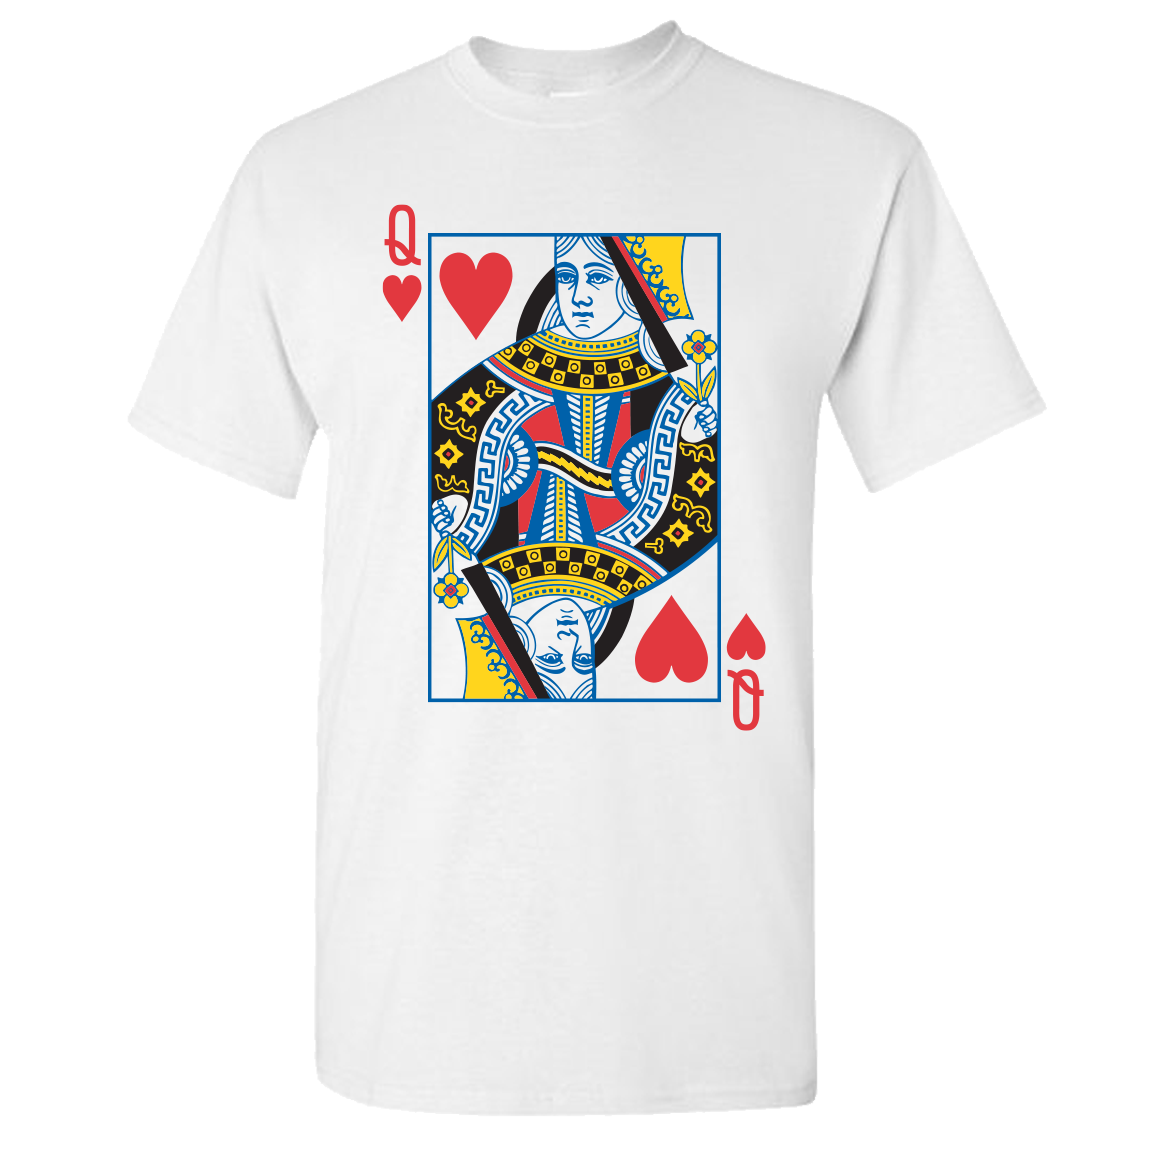 Queen of Hearts - Cincy Shirts